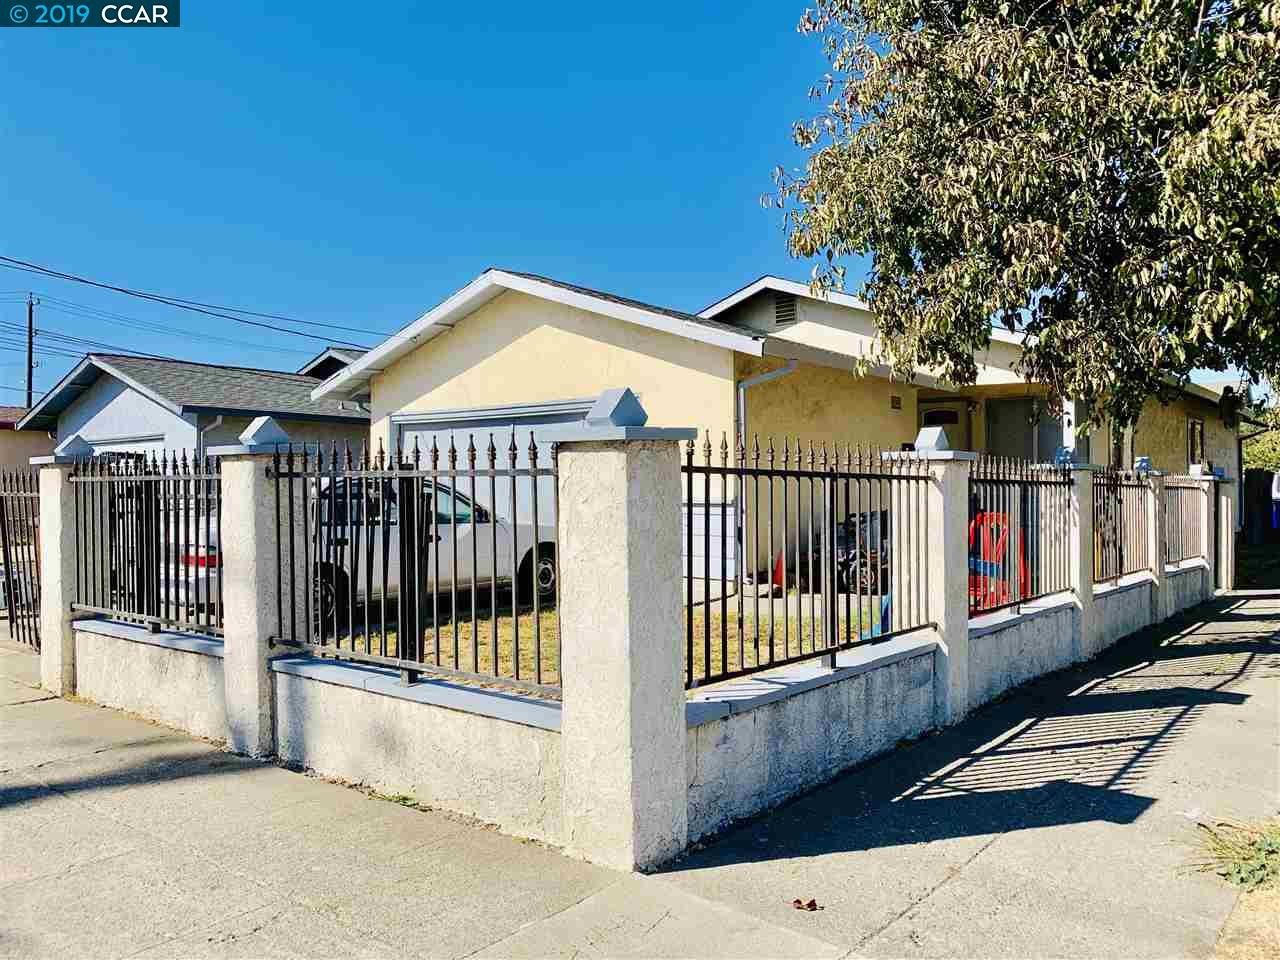 333 MAINE AVE, RICHMOND, CA 94804